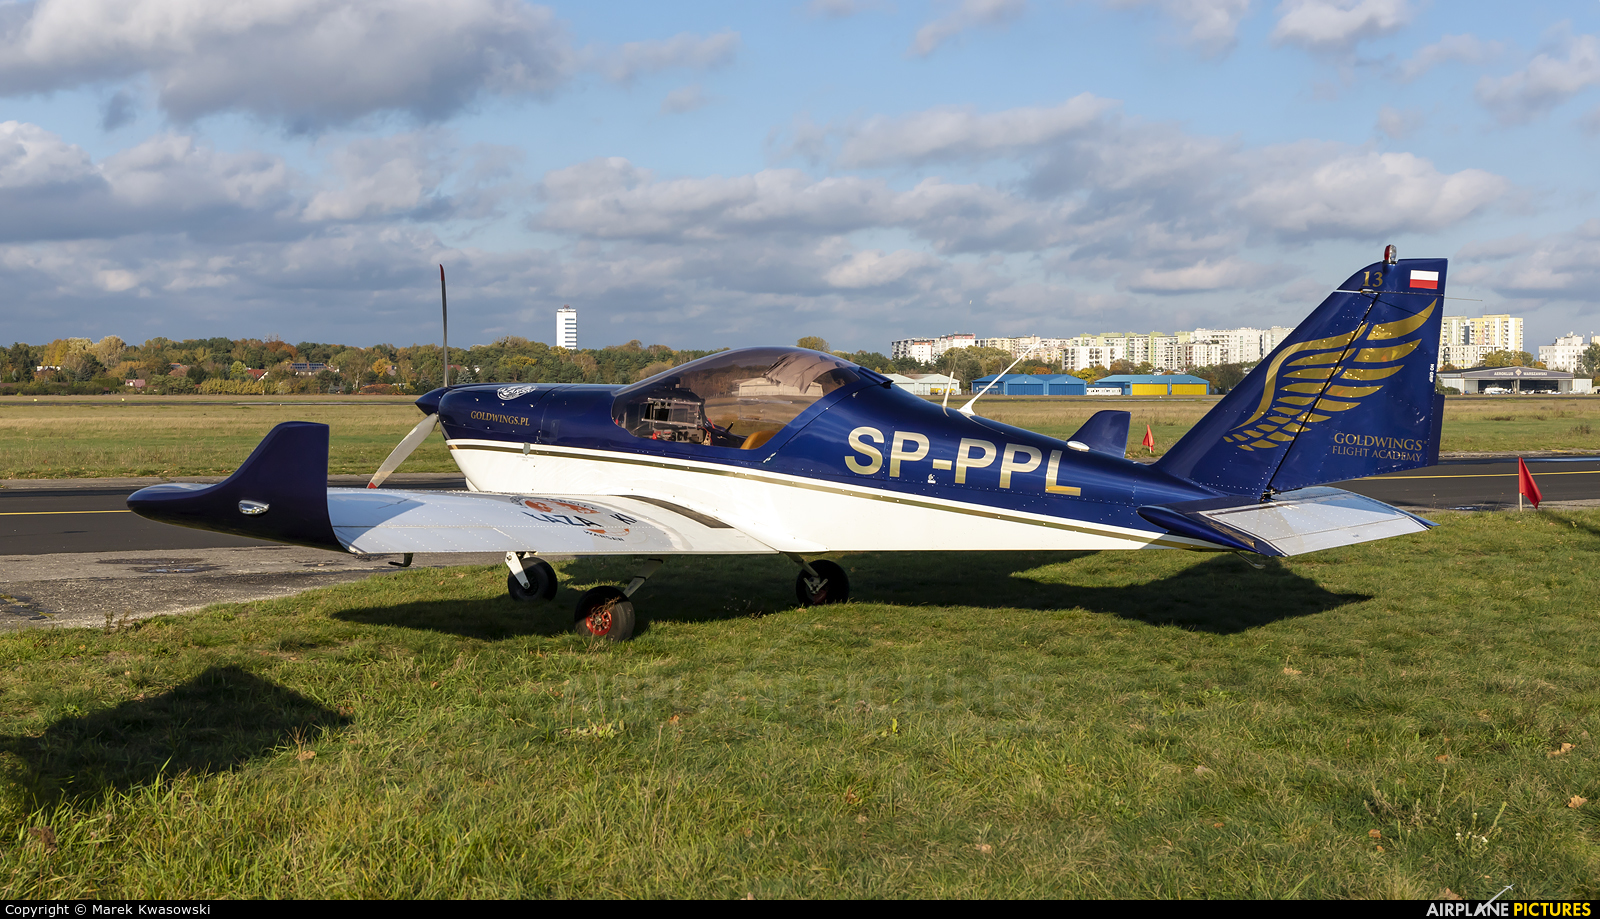 Goldwings Flight Academy SP-PPL aircraft at Warsaw - Babice